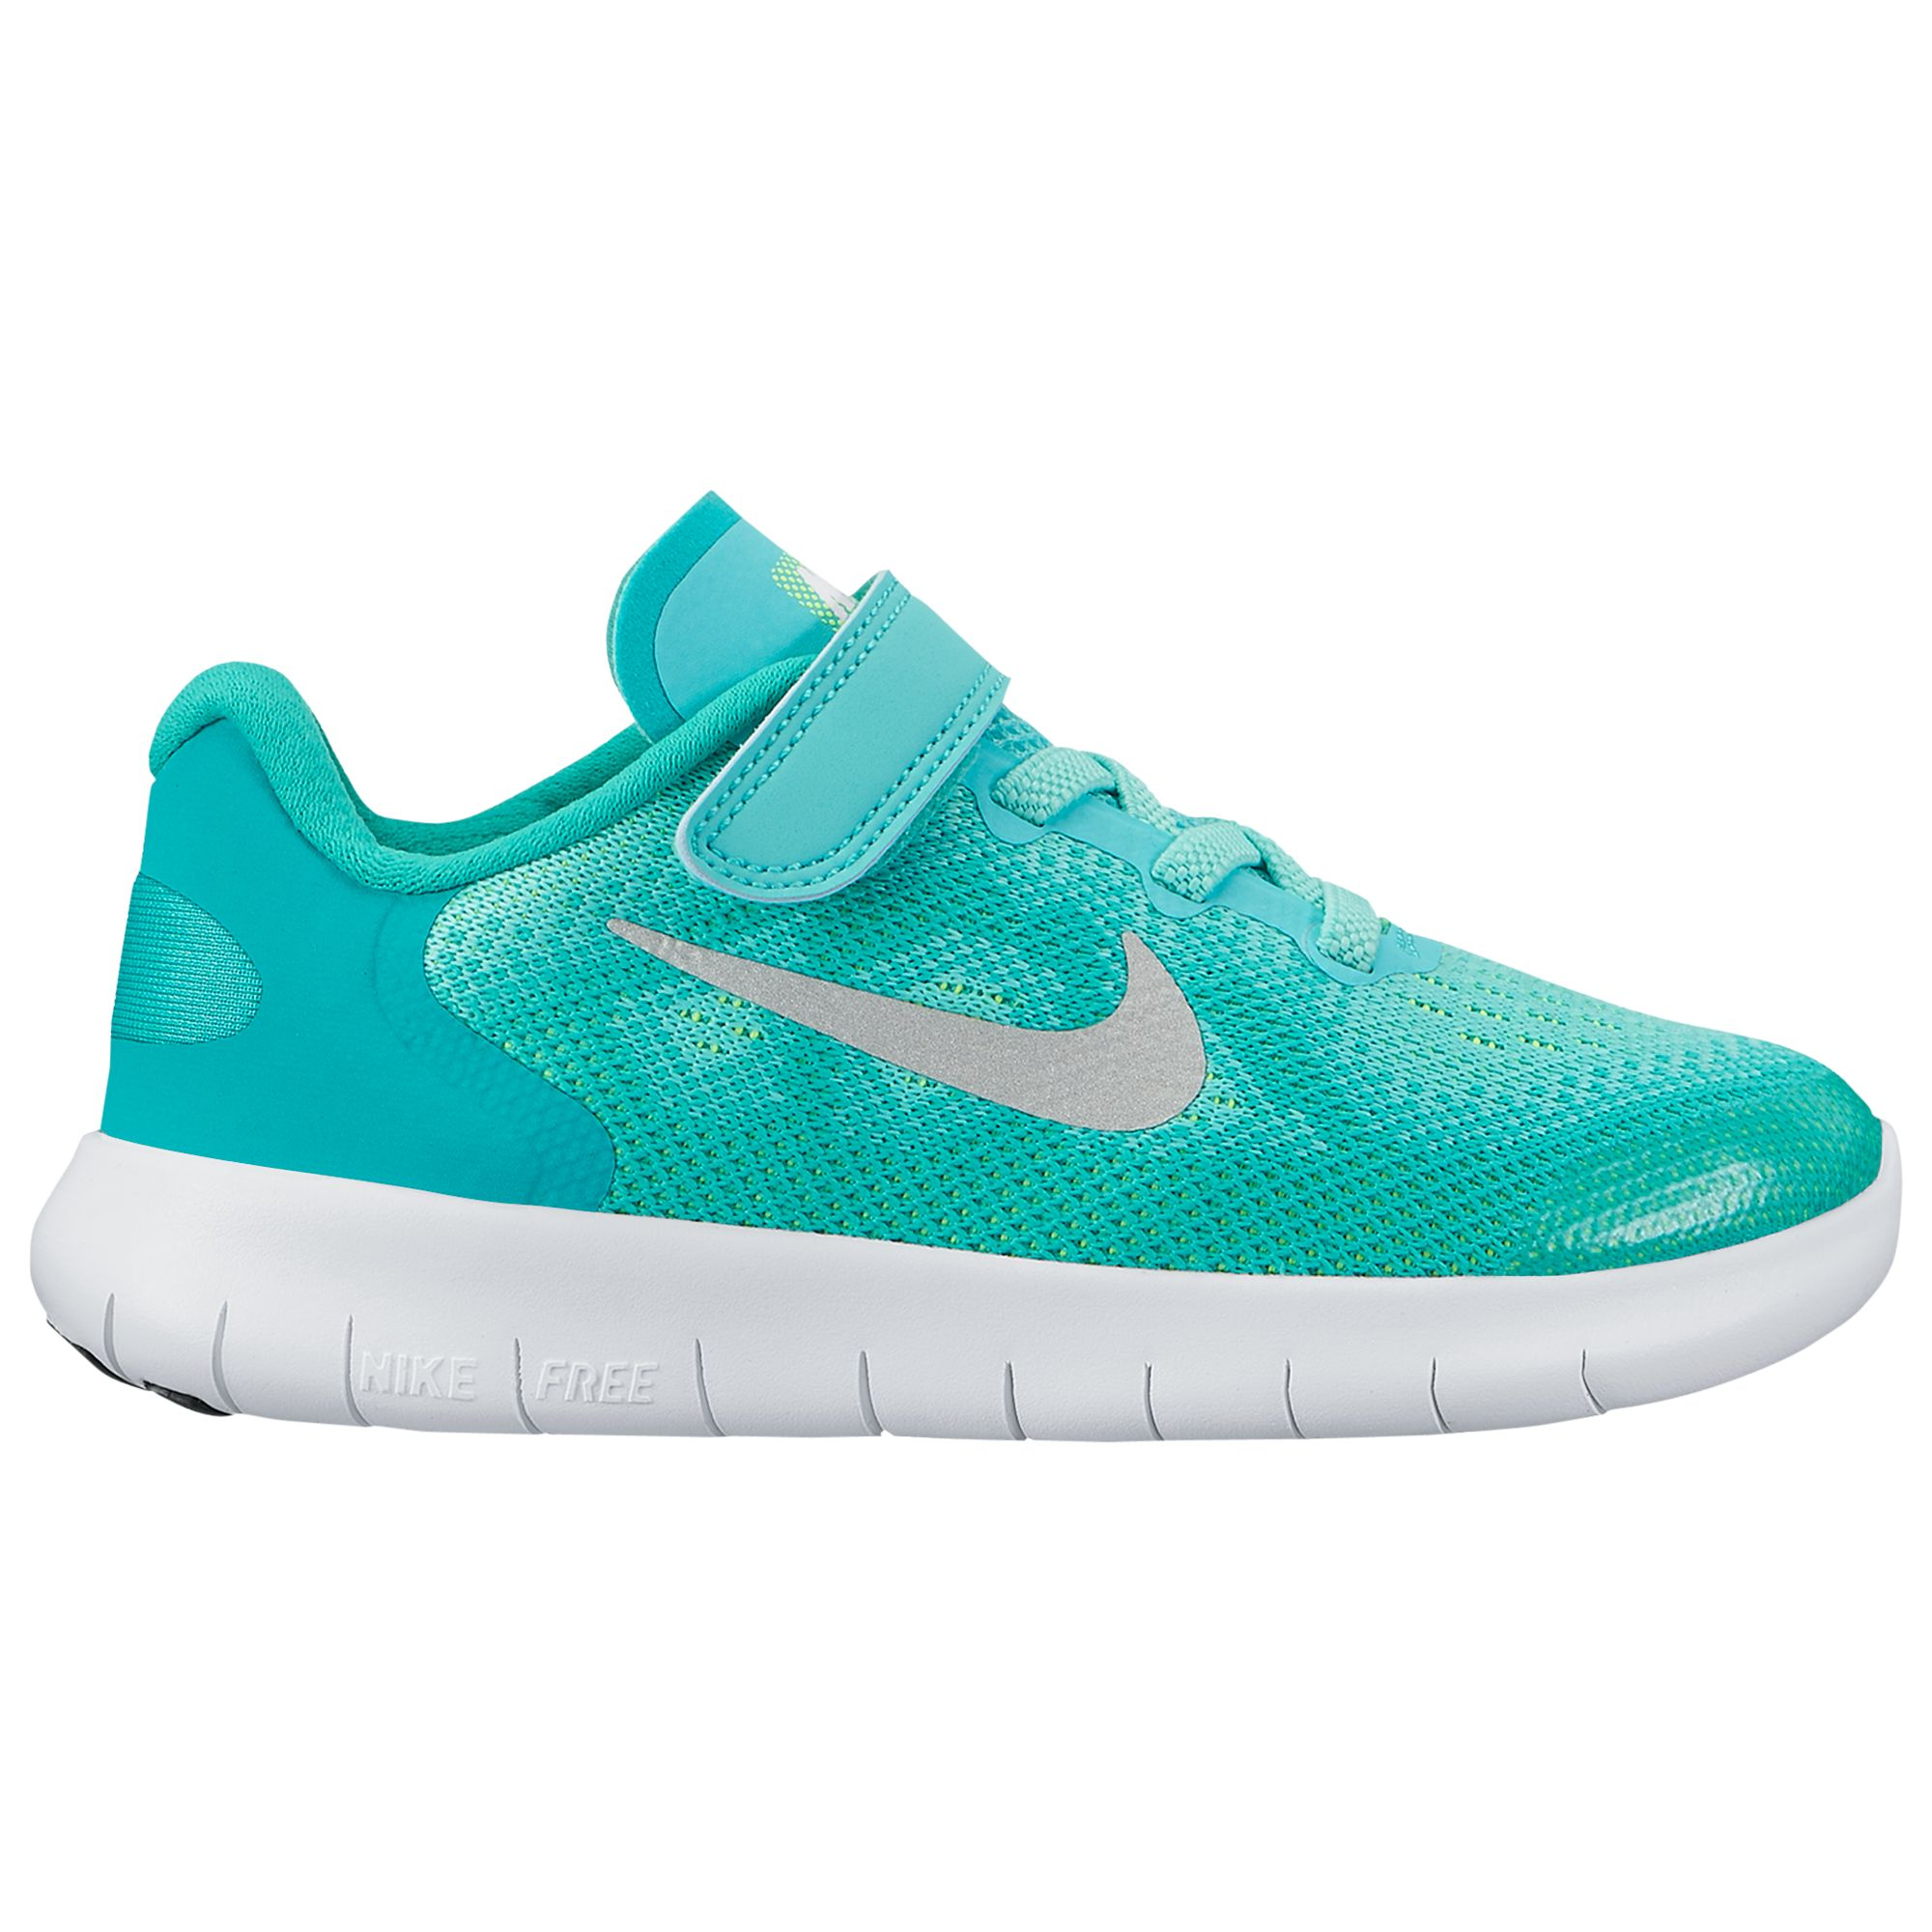 275ea450a04c Nike Children s Free Run 2 PS Rip Tape Trainers at John Lewis   Partners